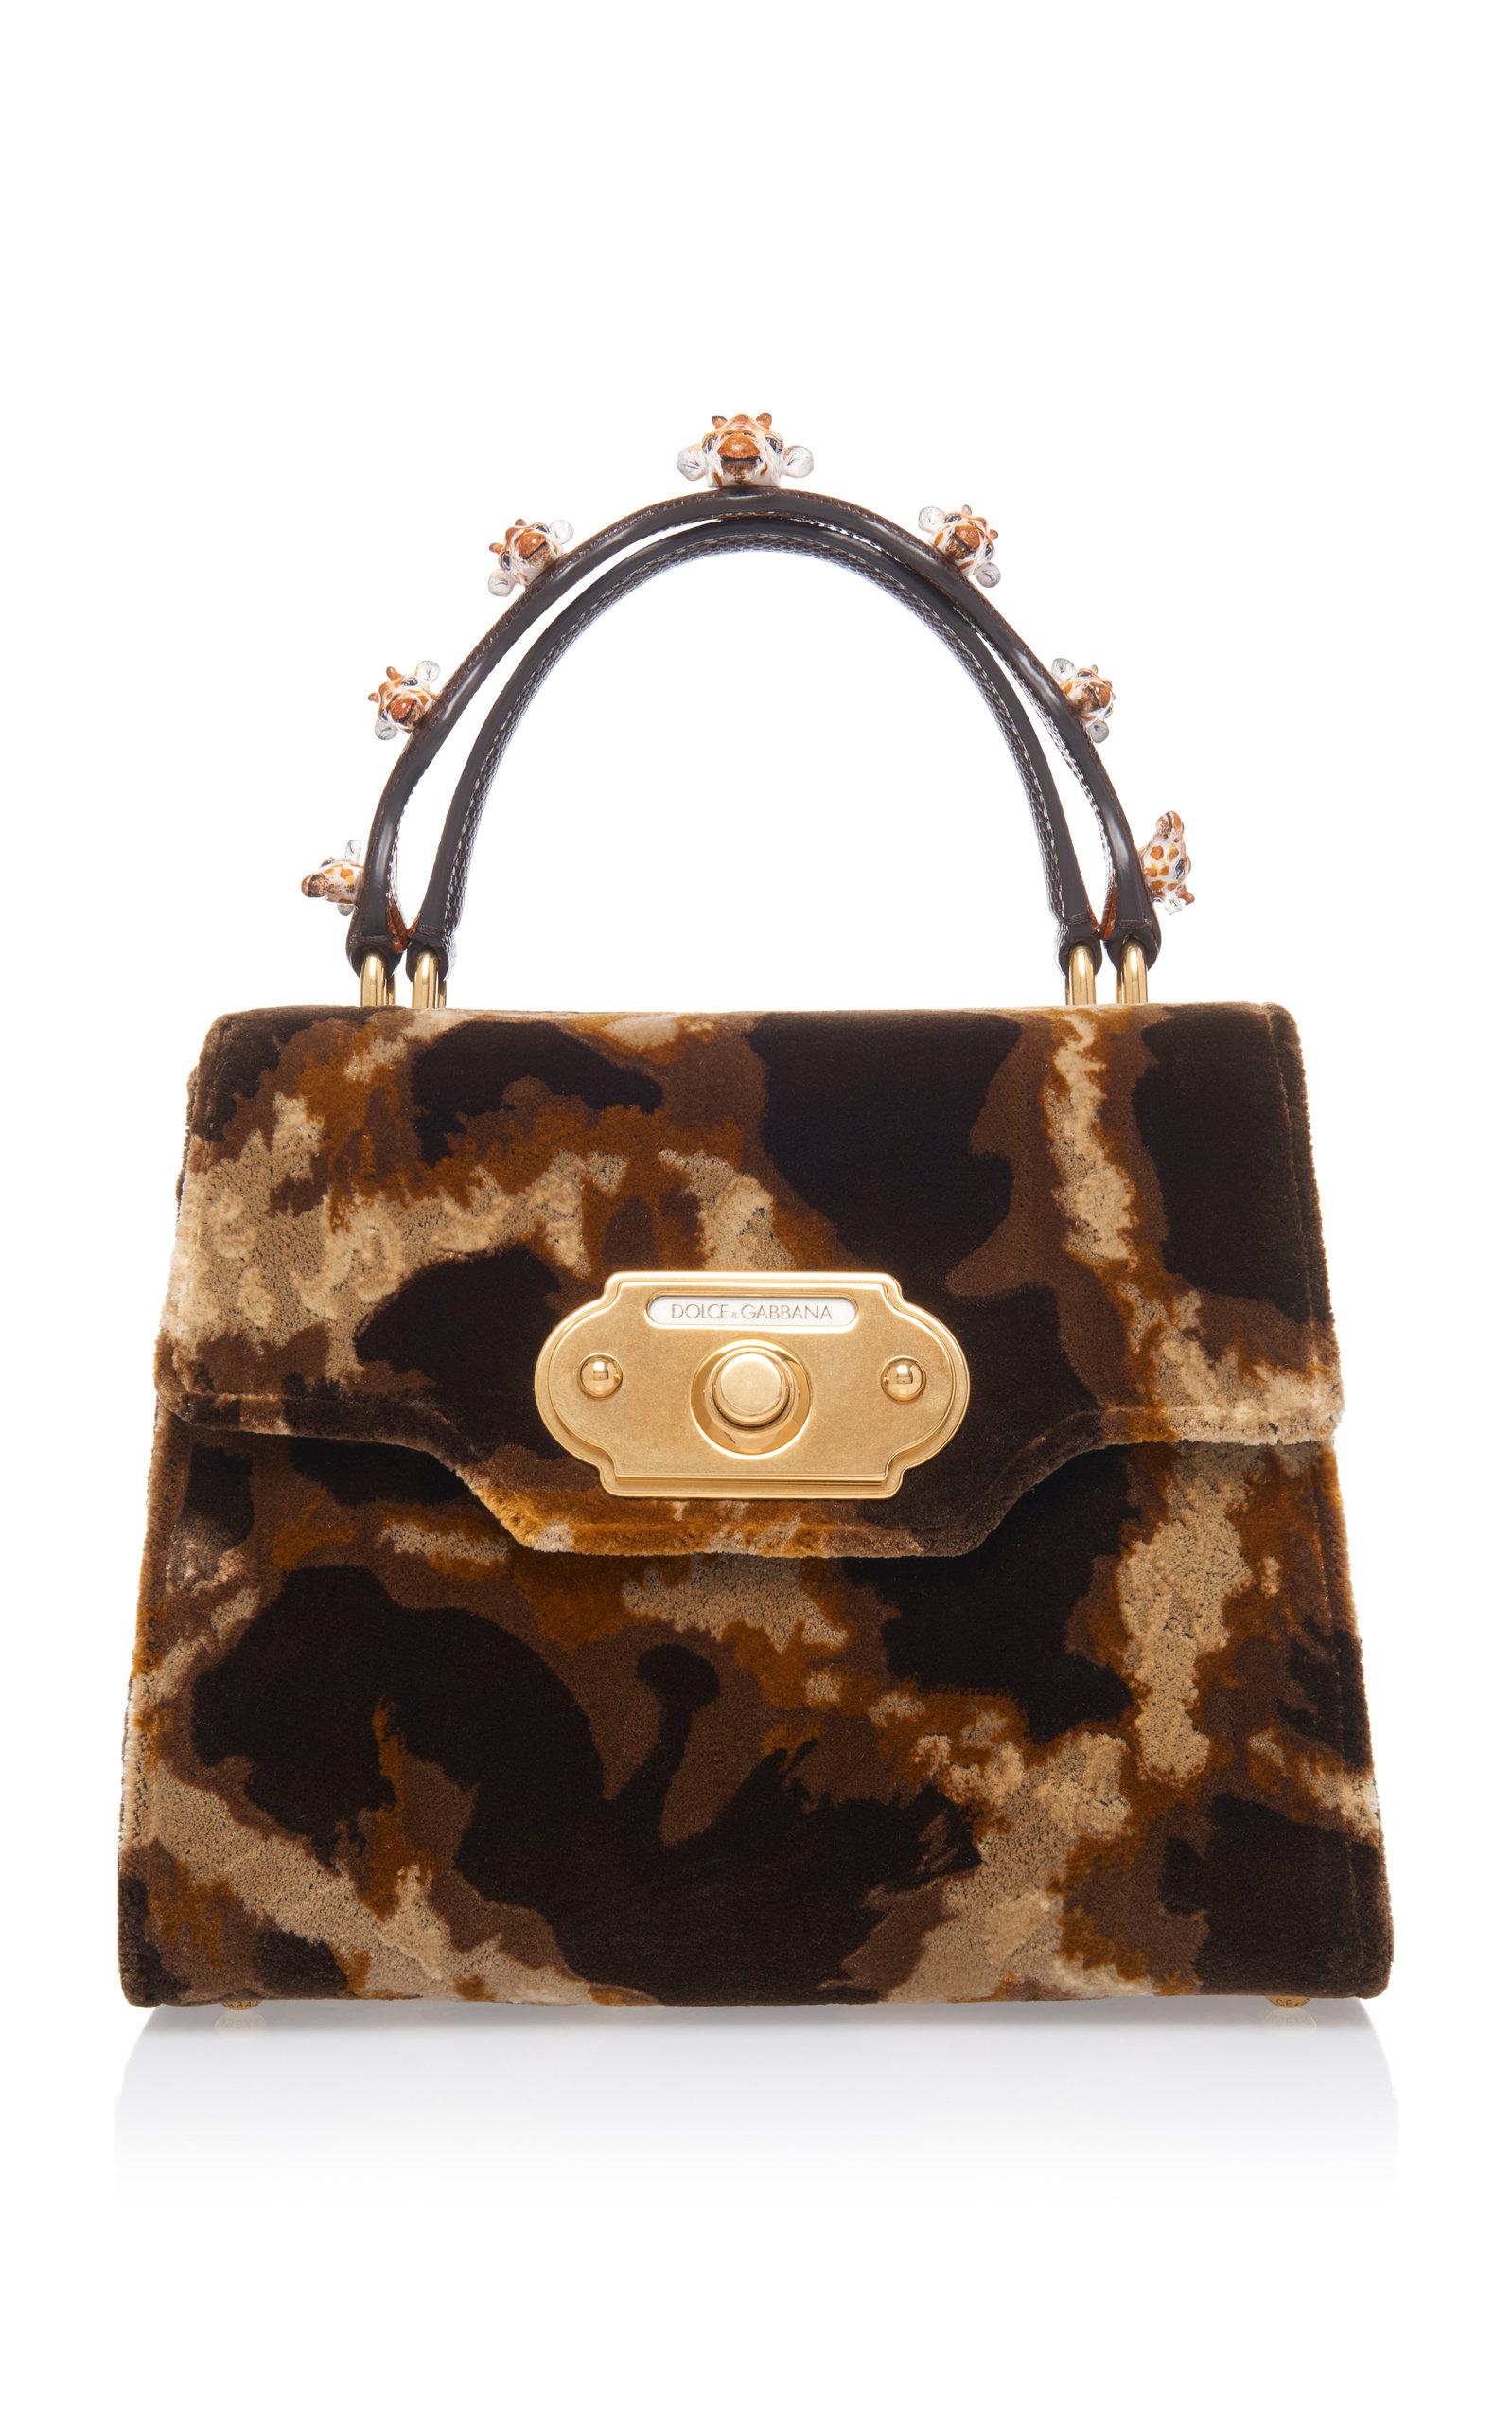 Dolce & Gabbana Embellished Leather-Trimmed Suede Tote fBSICNn2y